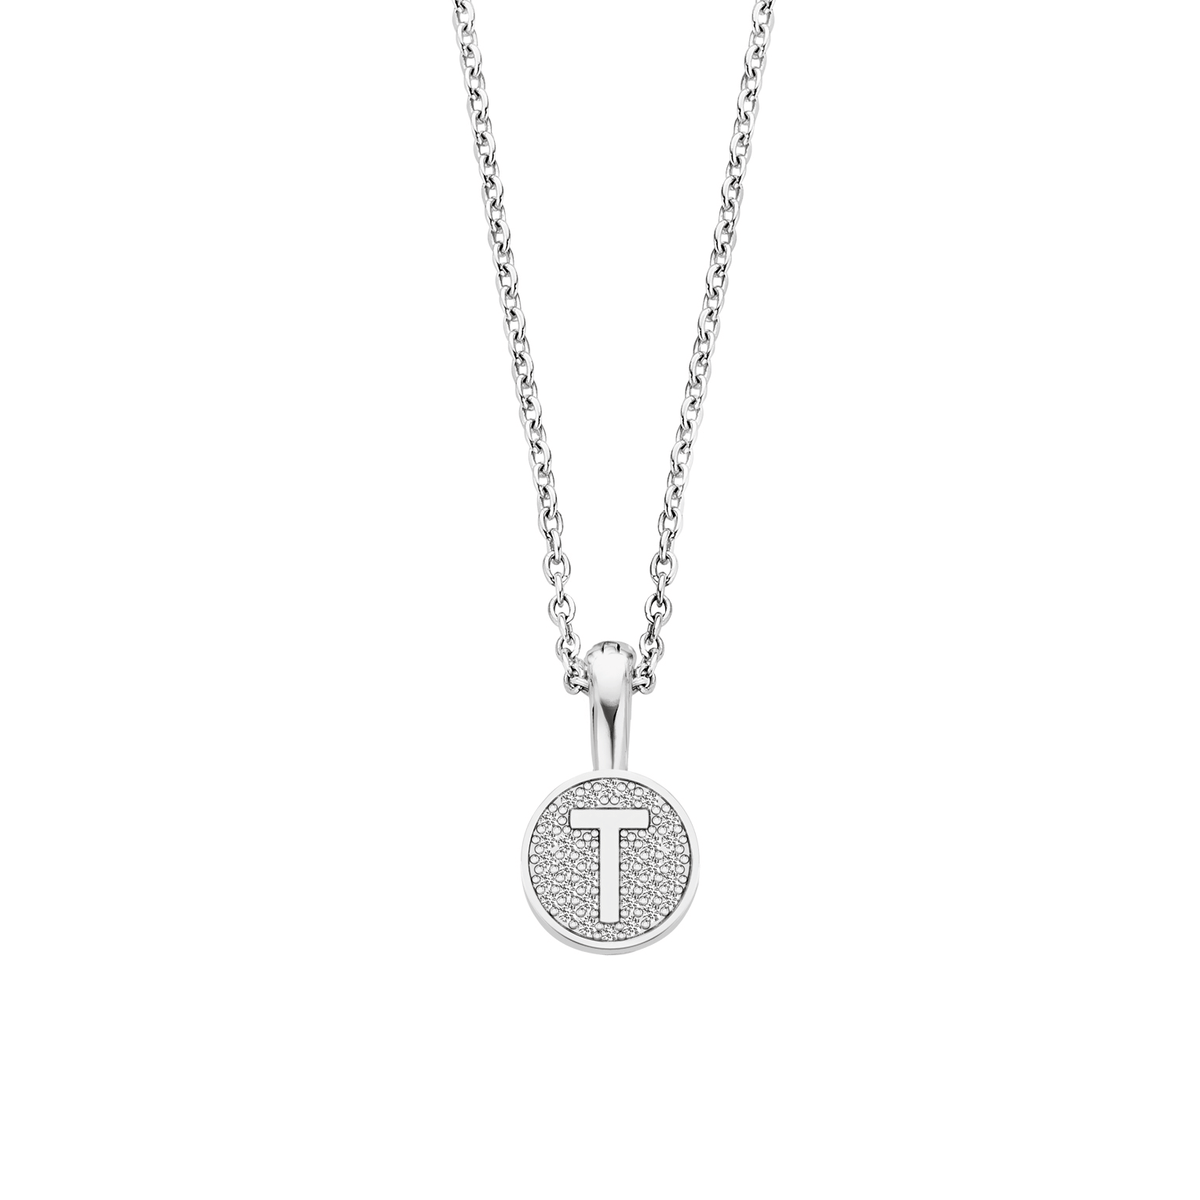 TI SENTO - Milano Necklace 3858LT